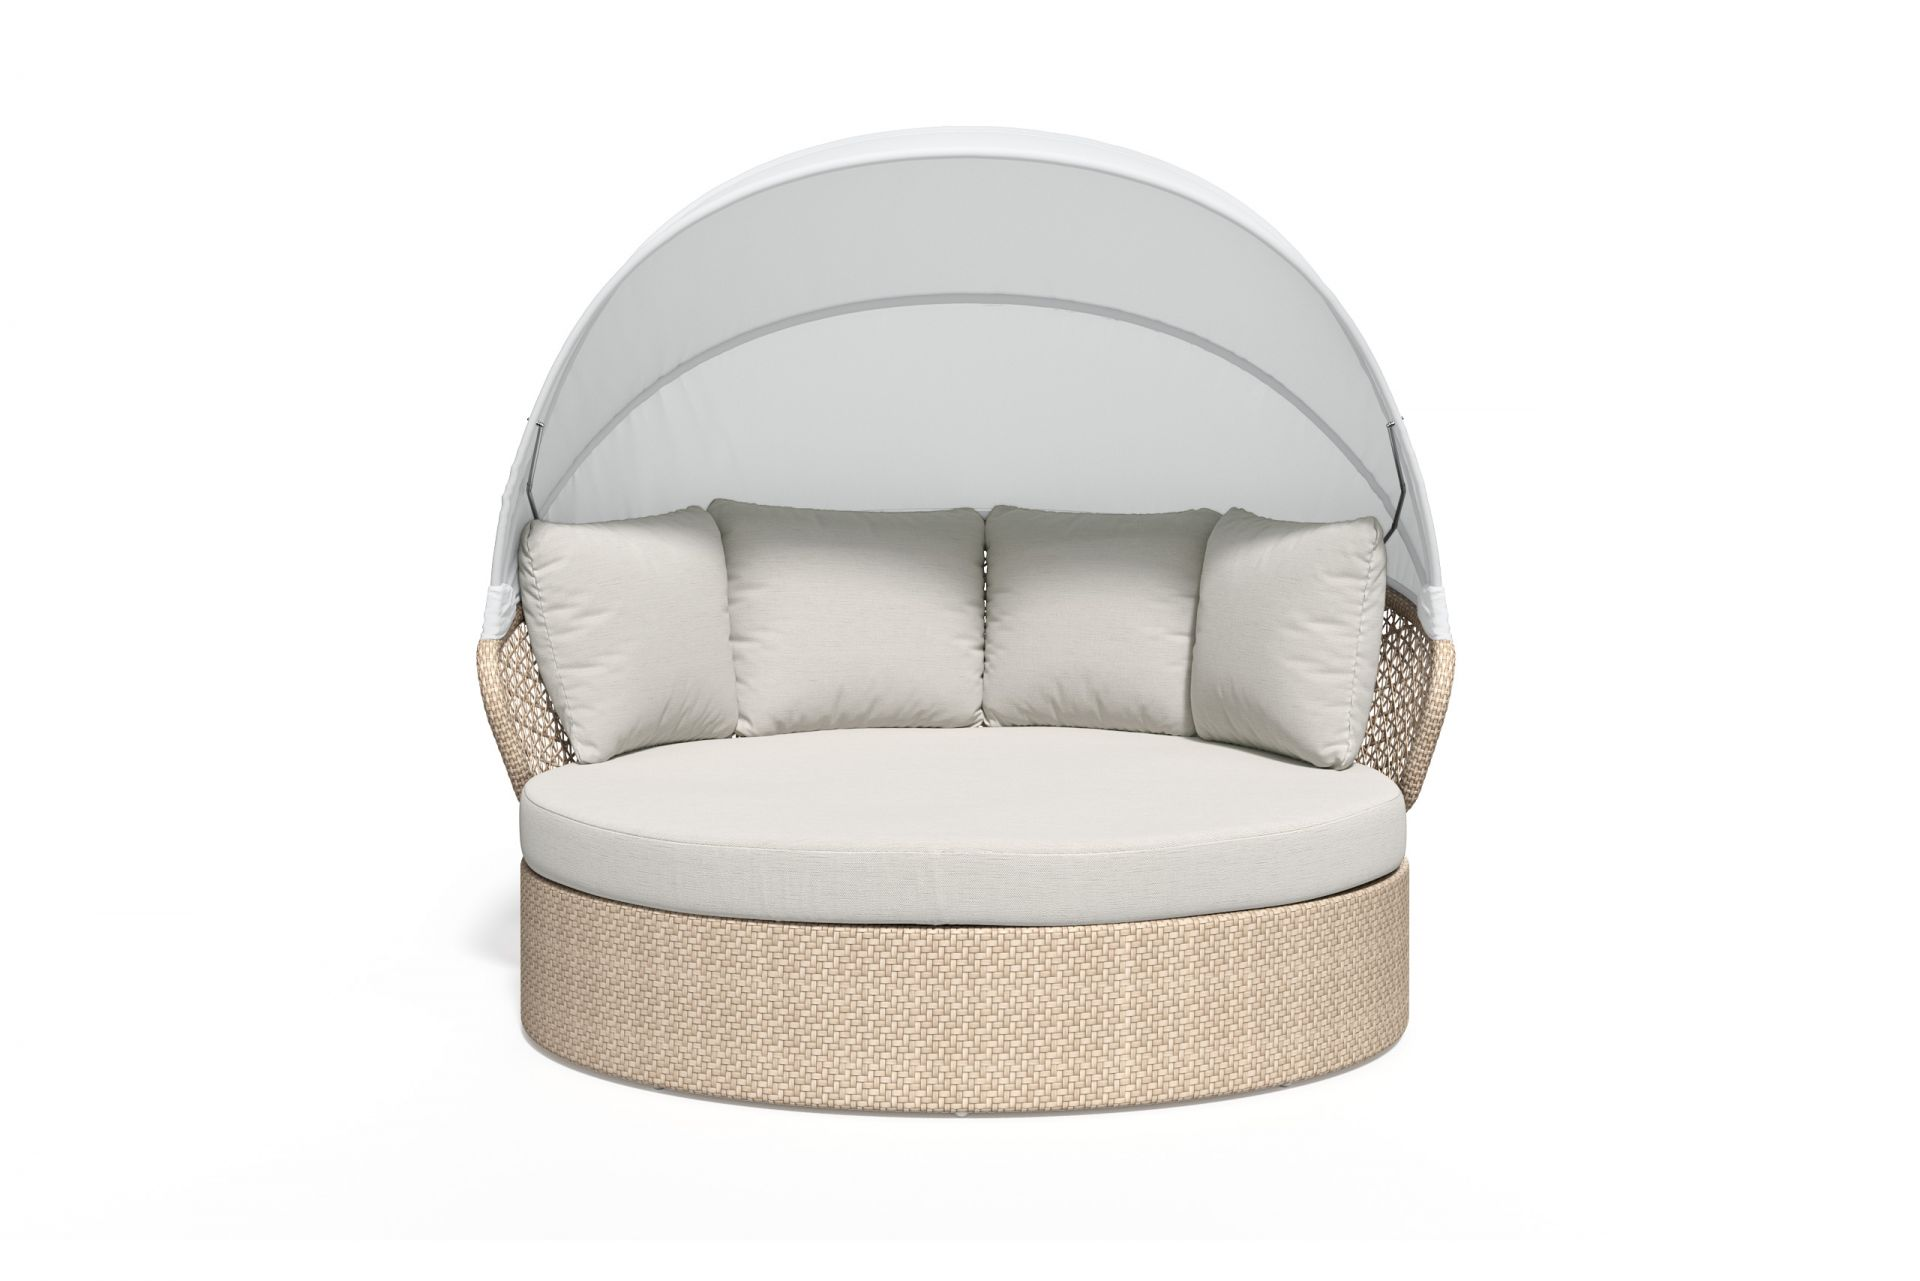 KAPSTADT Daybed